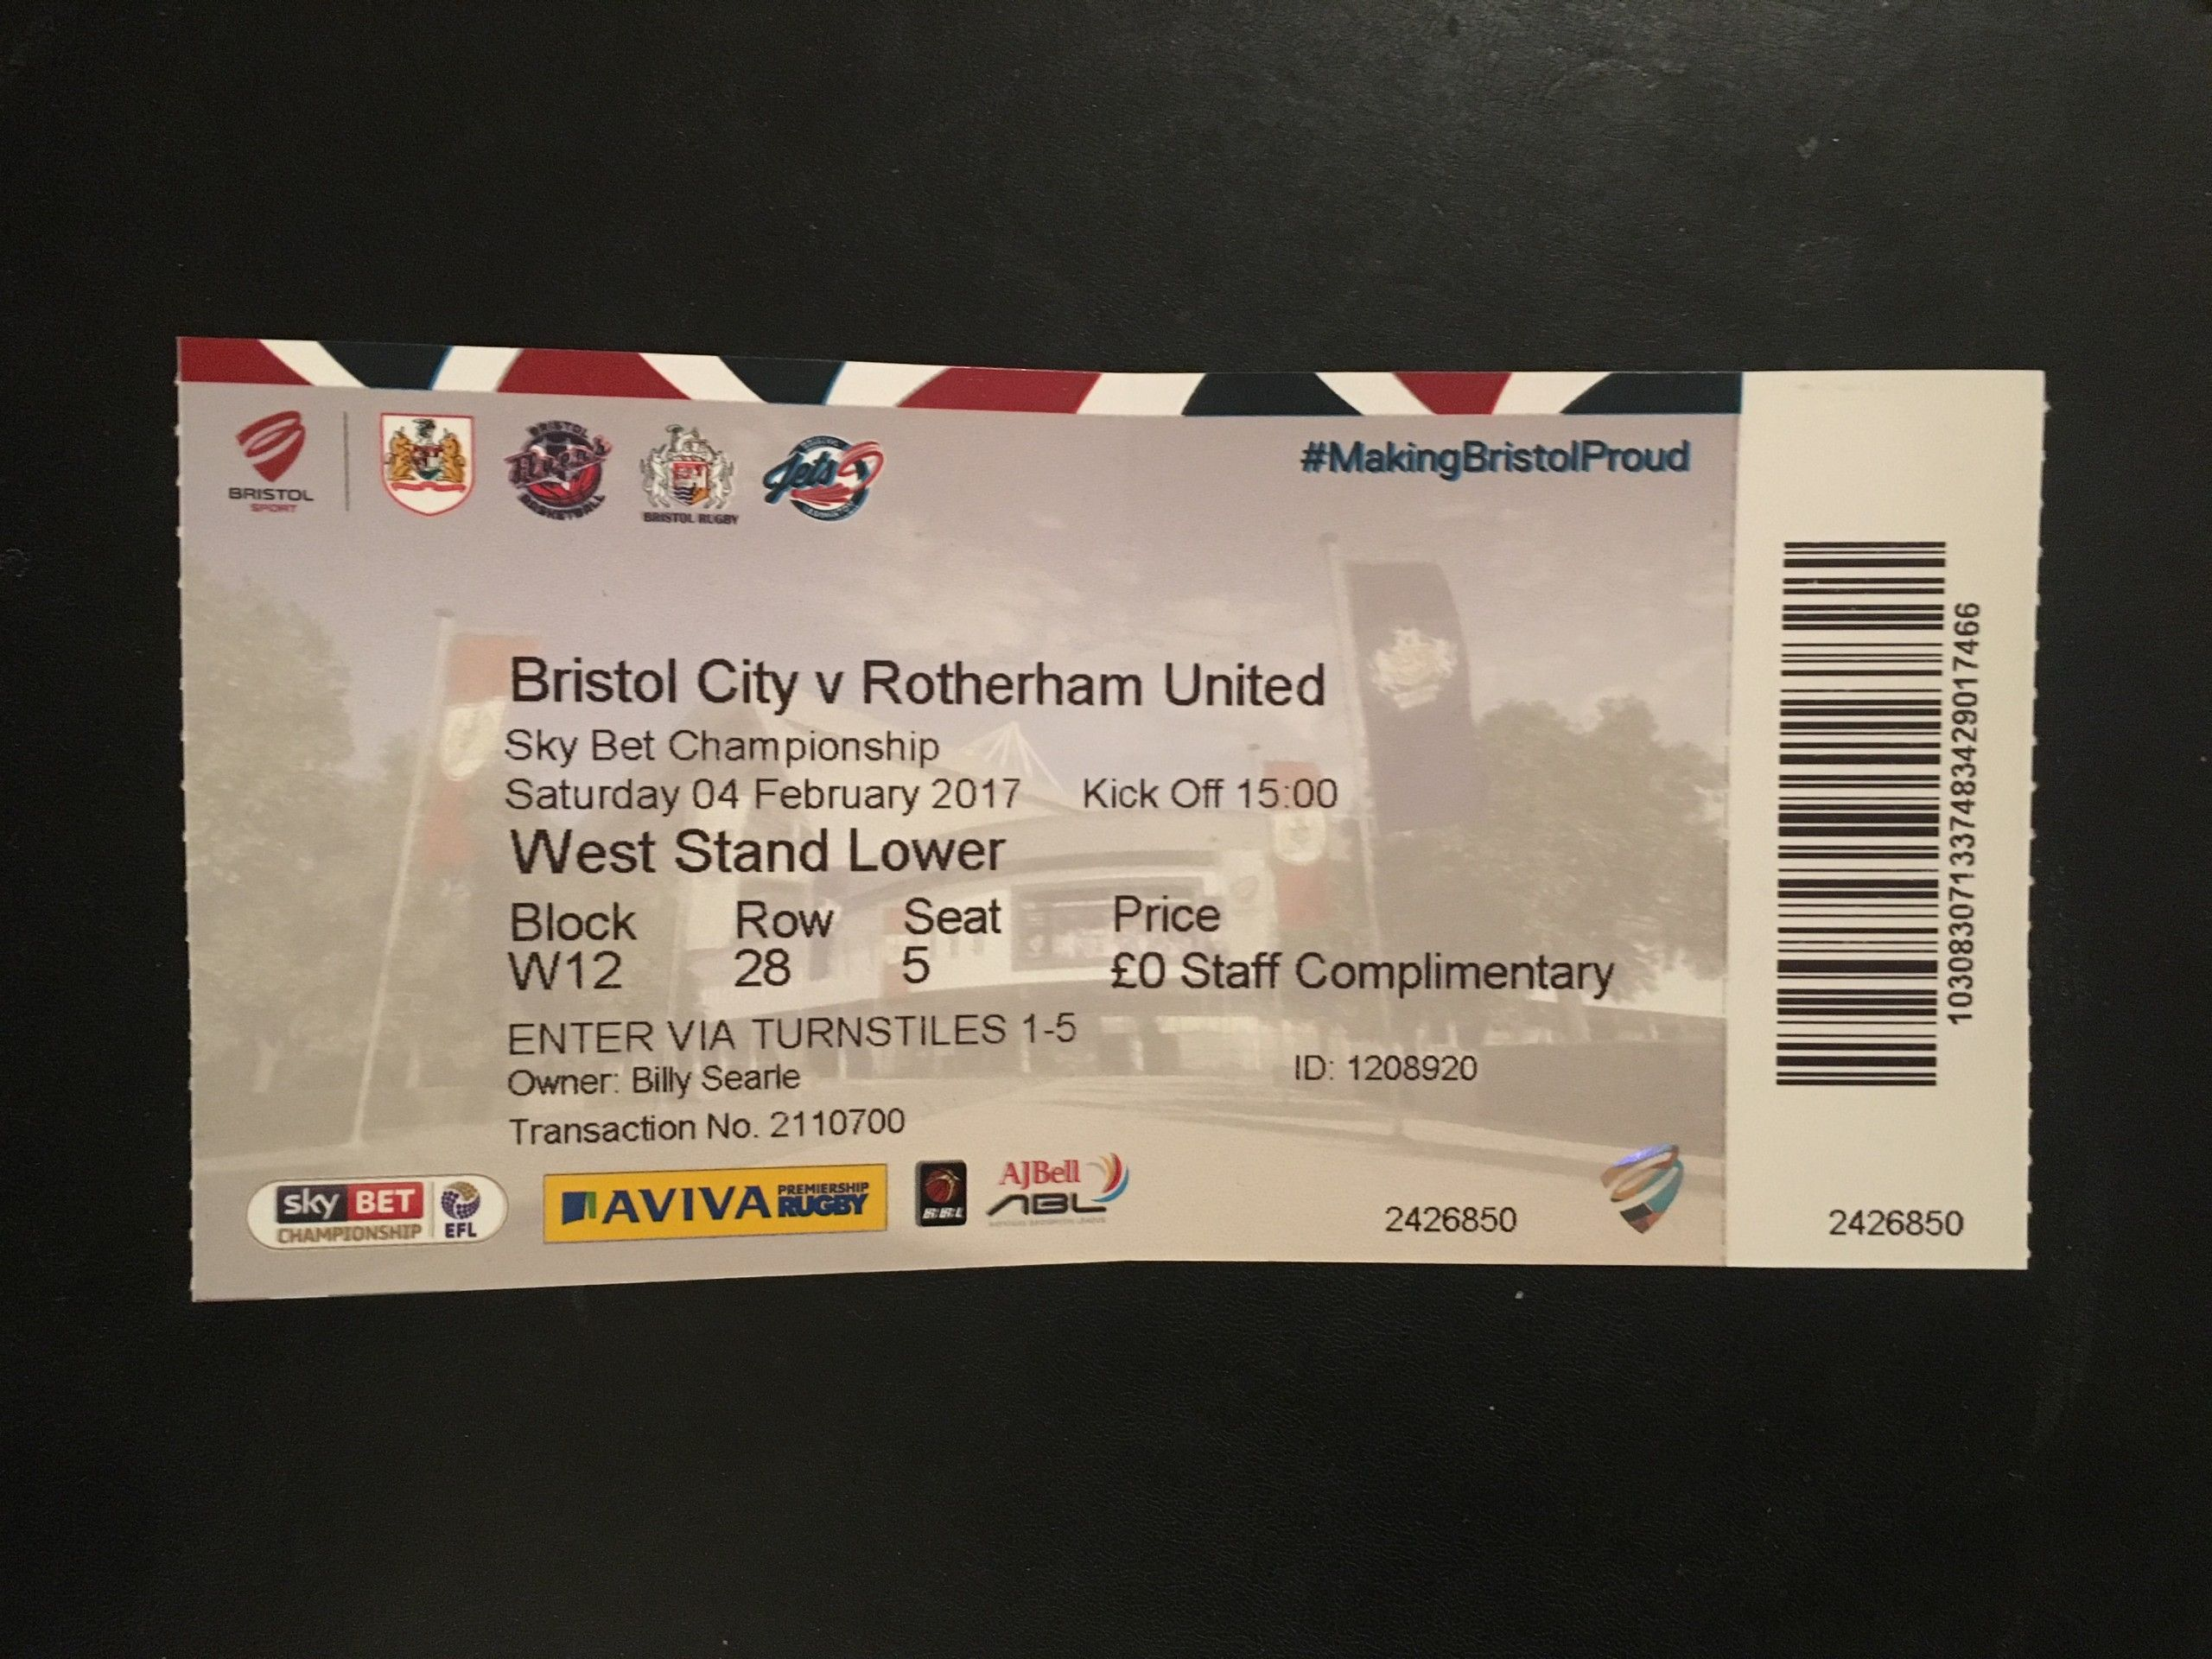 Bristol City v Rotherham United 04-02-2017 Ticket